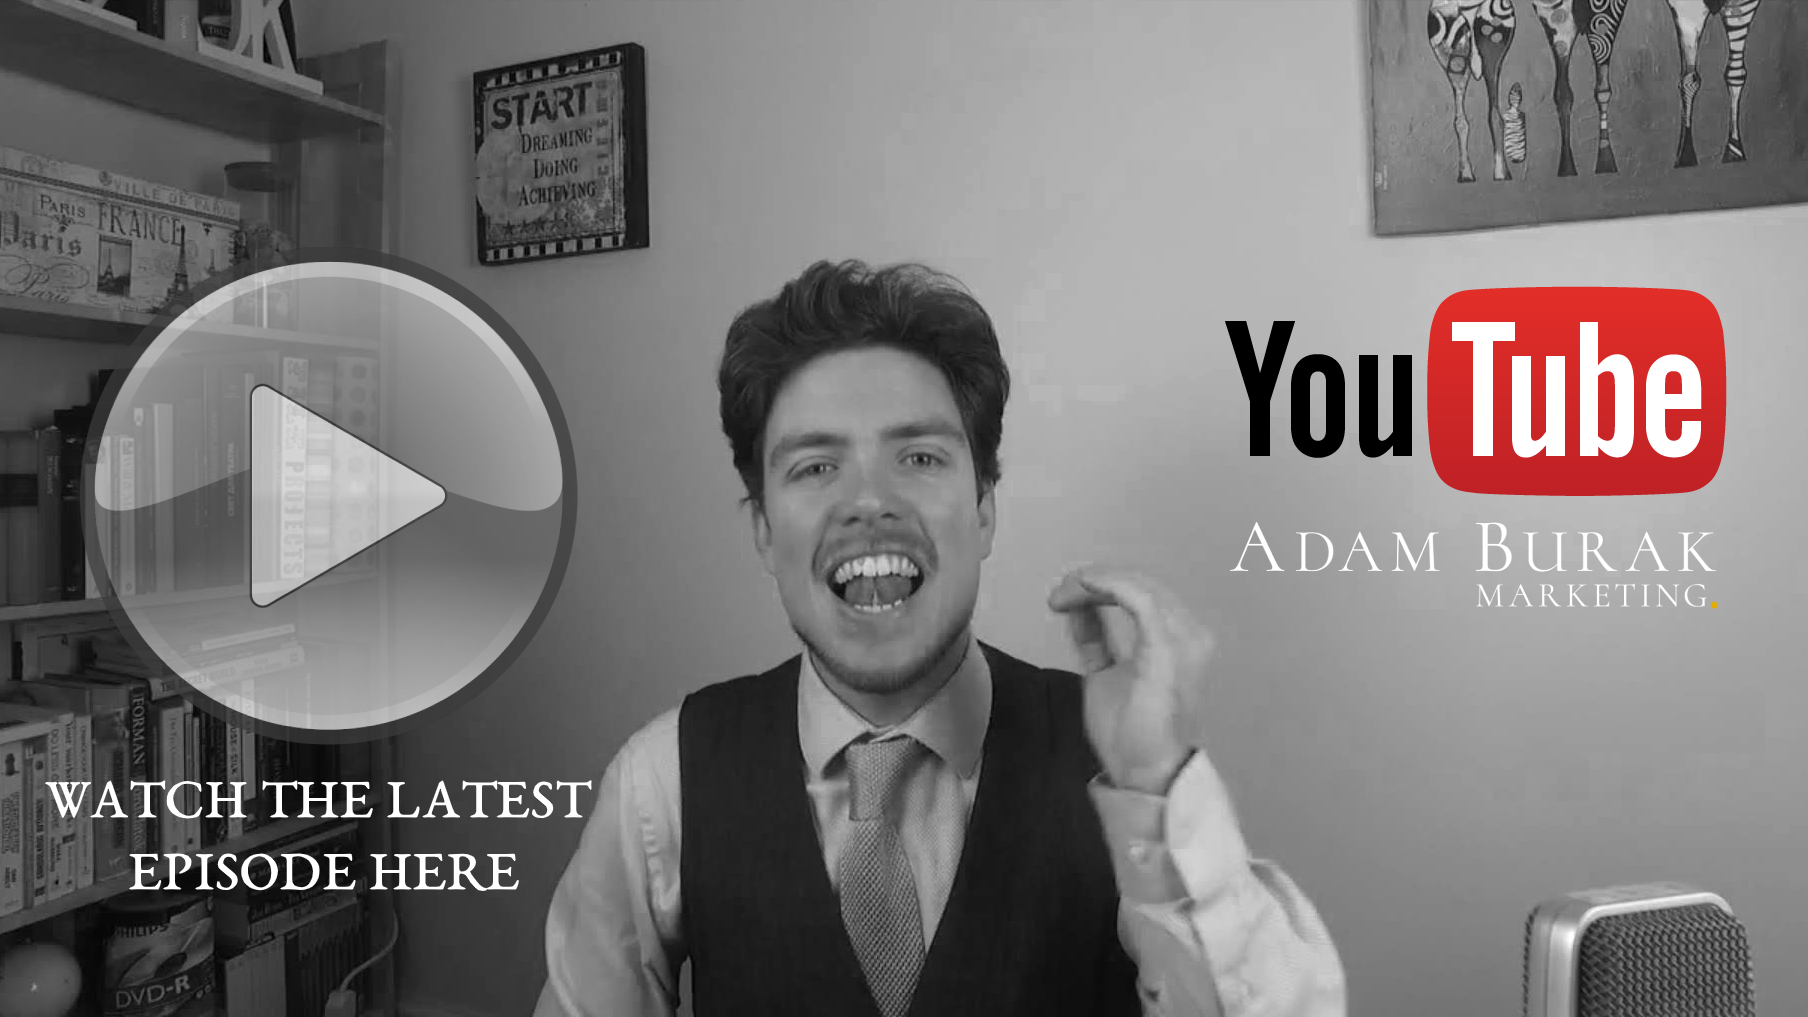 YouTube Feed - Adam Burak Marketing